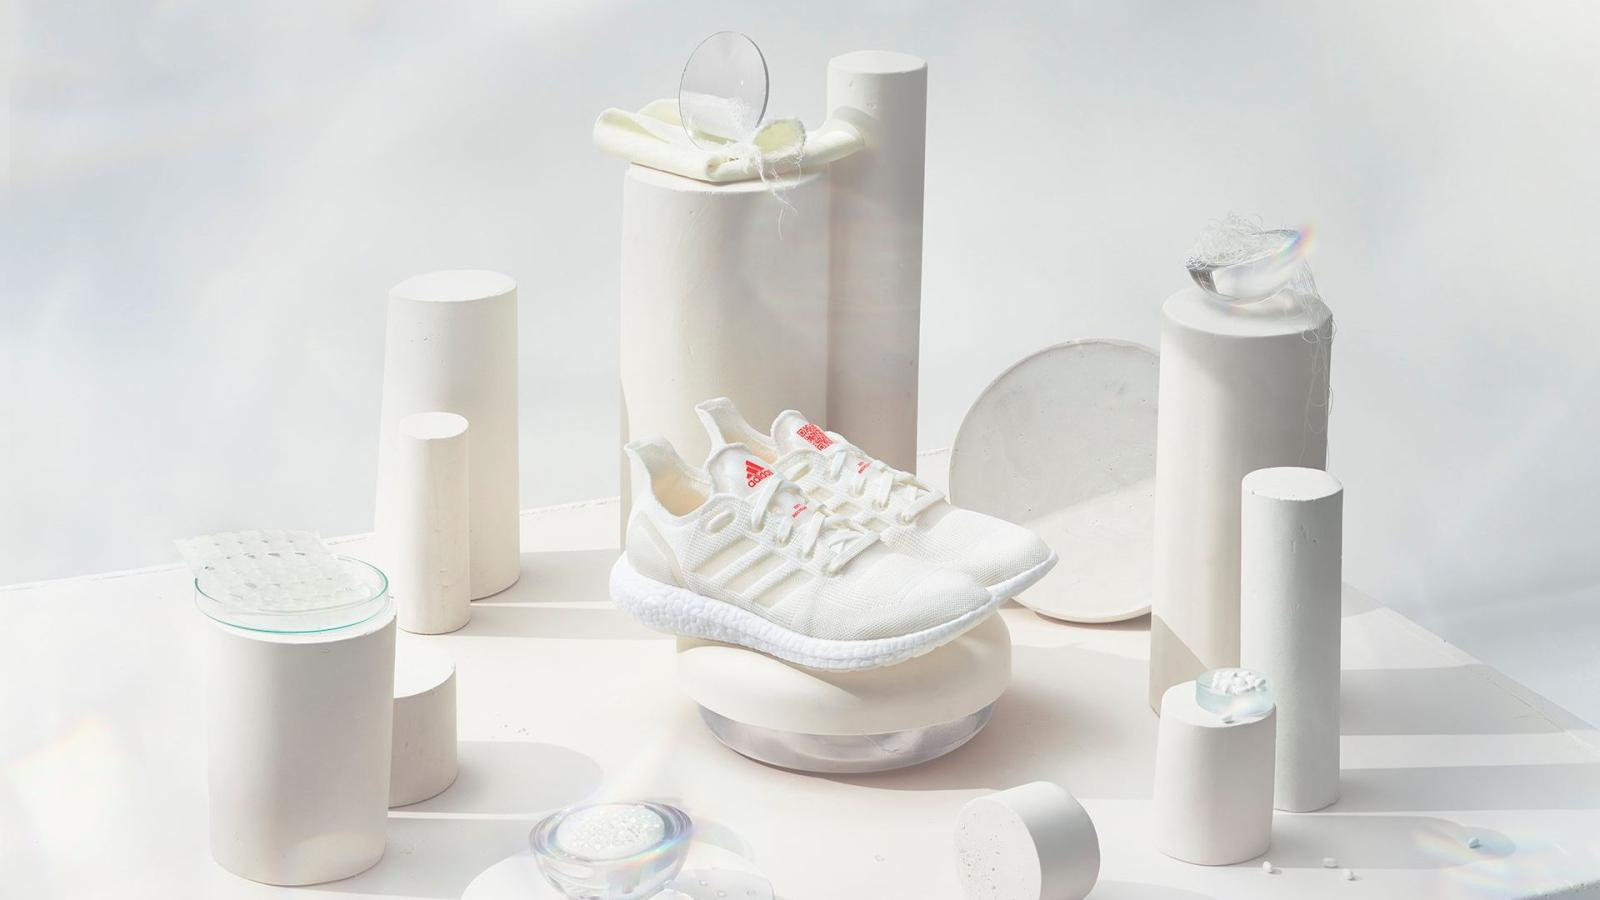 Adidas' New Shoes Are Zero-Waste and Pretty Darn Chic